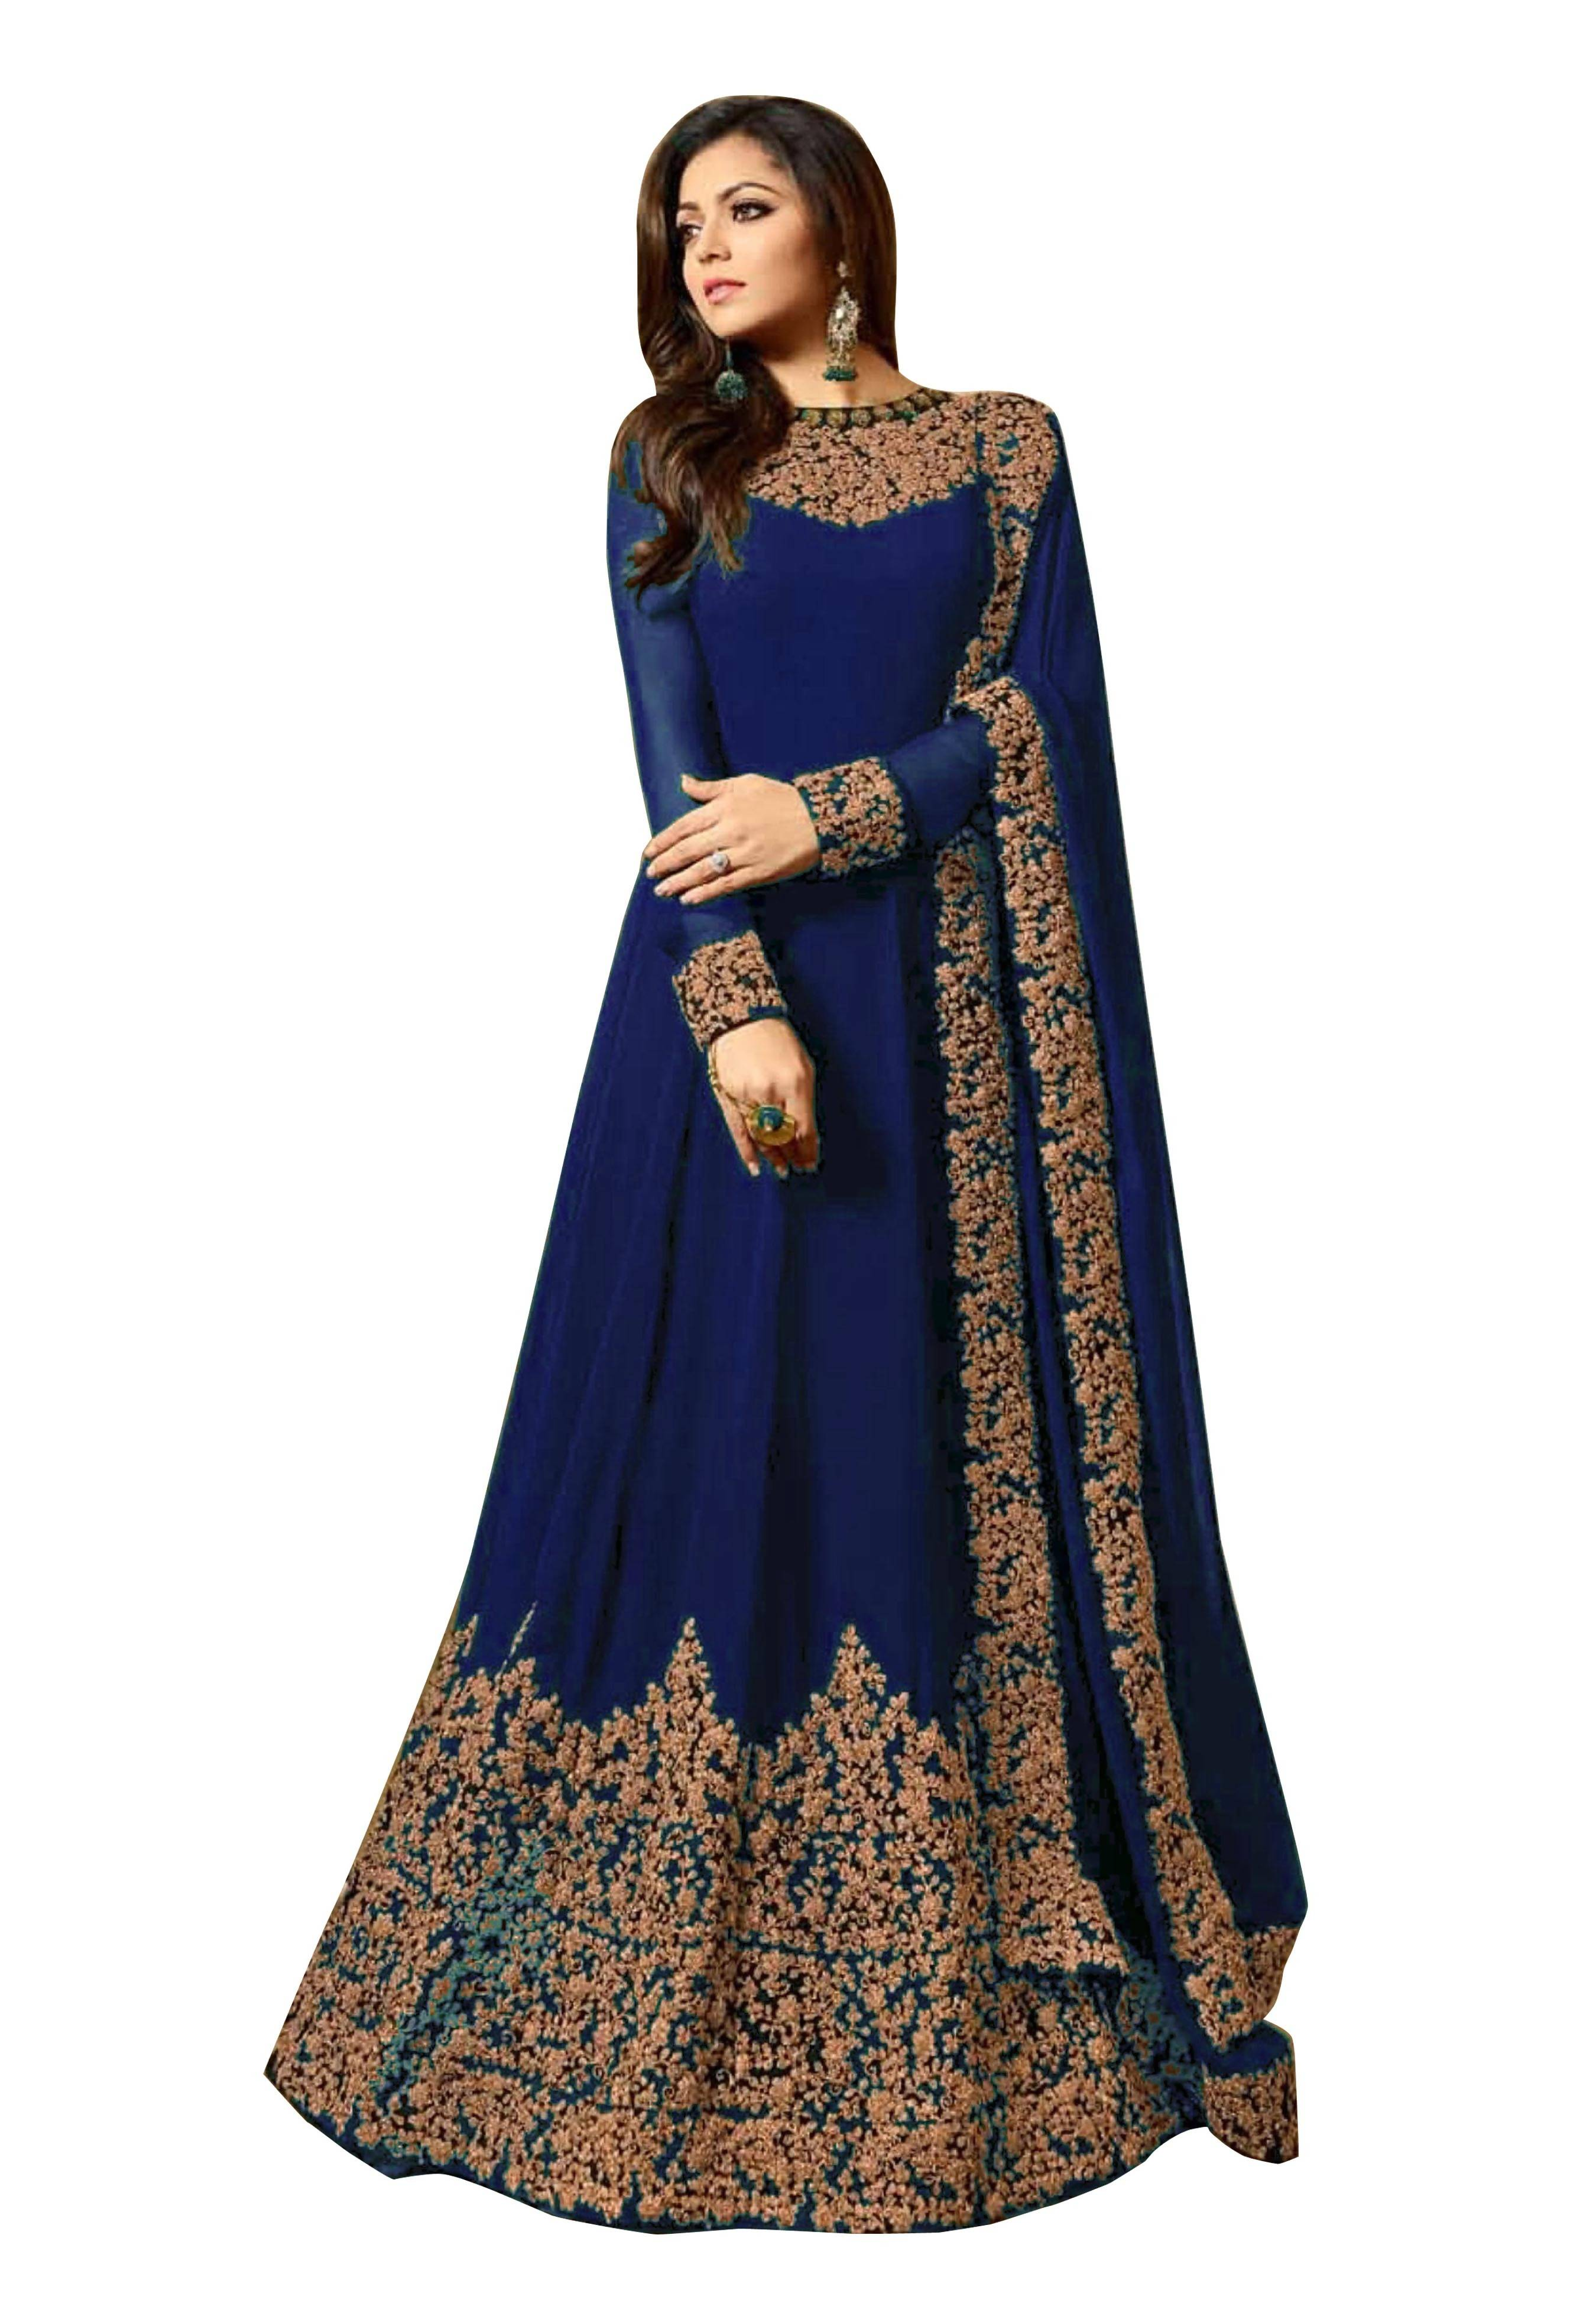 dc0705375c ... Semi-stitched Faux Georgette Embroidered Anarkali Salwar Suit $F1220-.  Hover to zoom